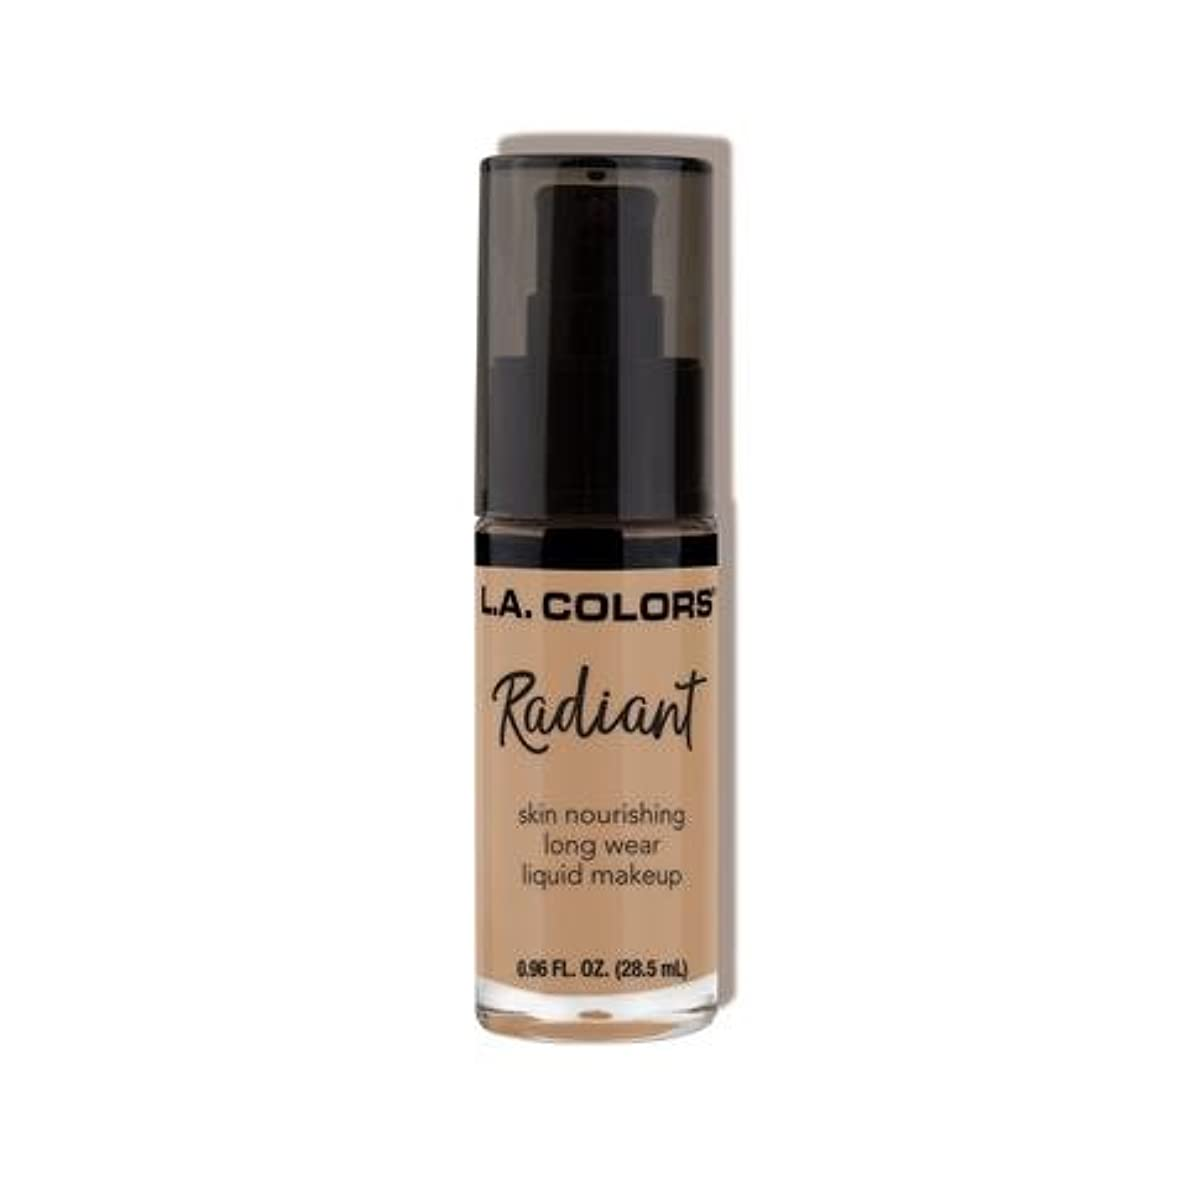 悪性の精査する暖炉(6 Pack) L.A. COLORS Radiant Liquid Makeup - Medium Beige (並行輸入品)